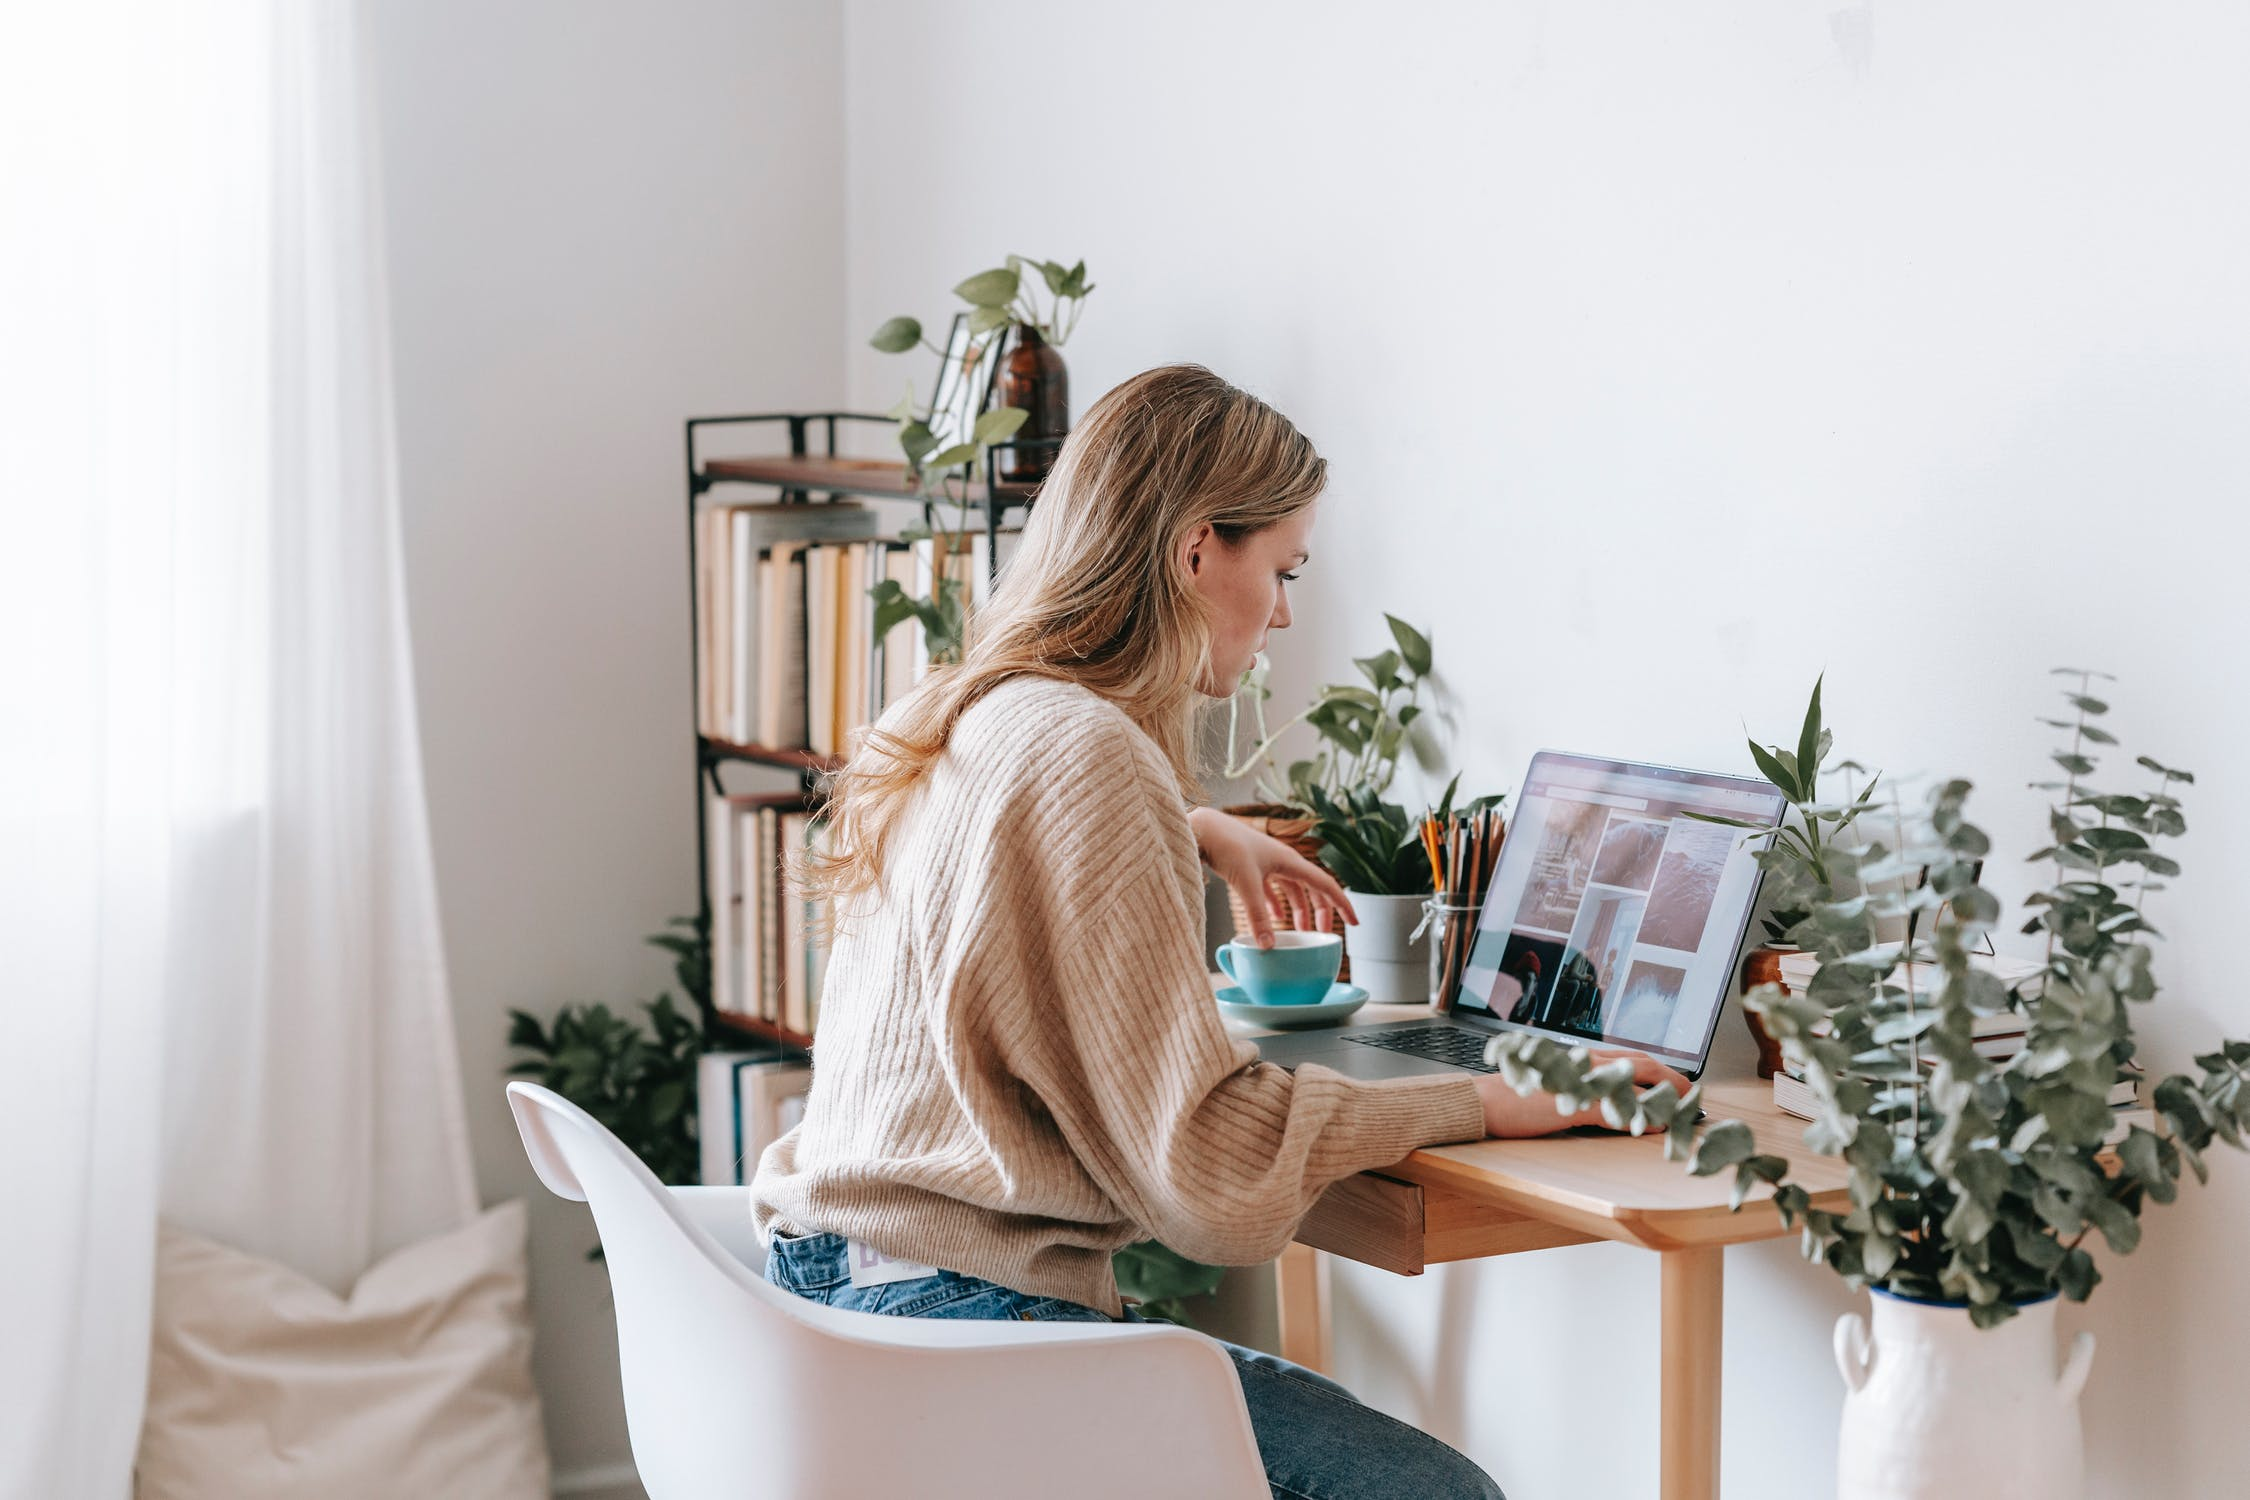 Woman in tan jumping working from home as a freelancer